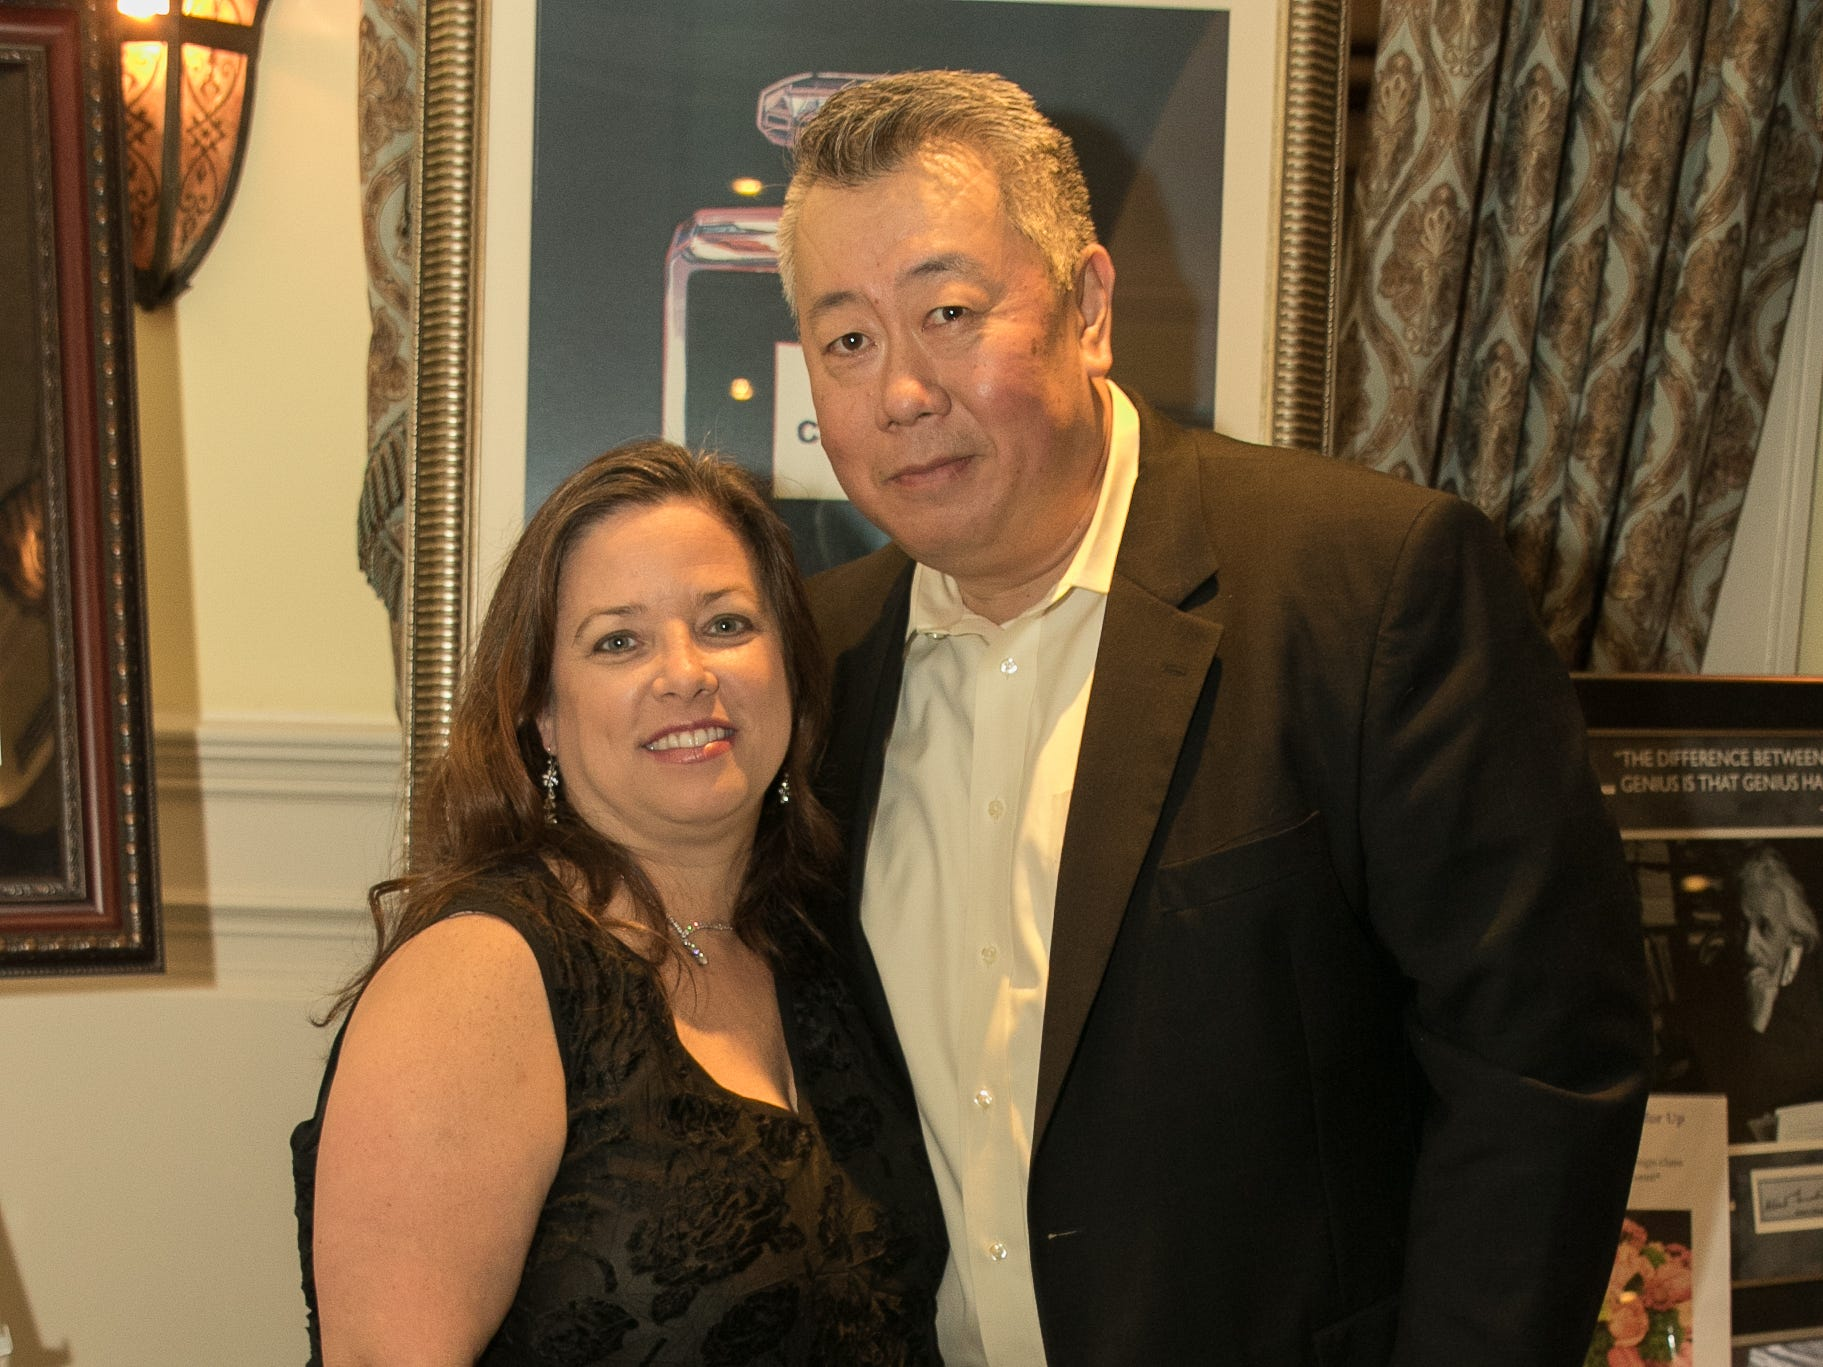 Michele and Louis Miao. The Emmanuel Cancer Foundation 9th Annual Bash at The Brick House. 03/15/2019